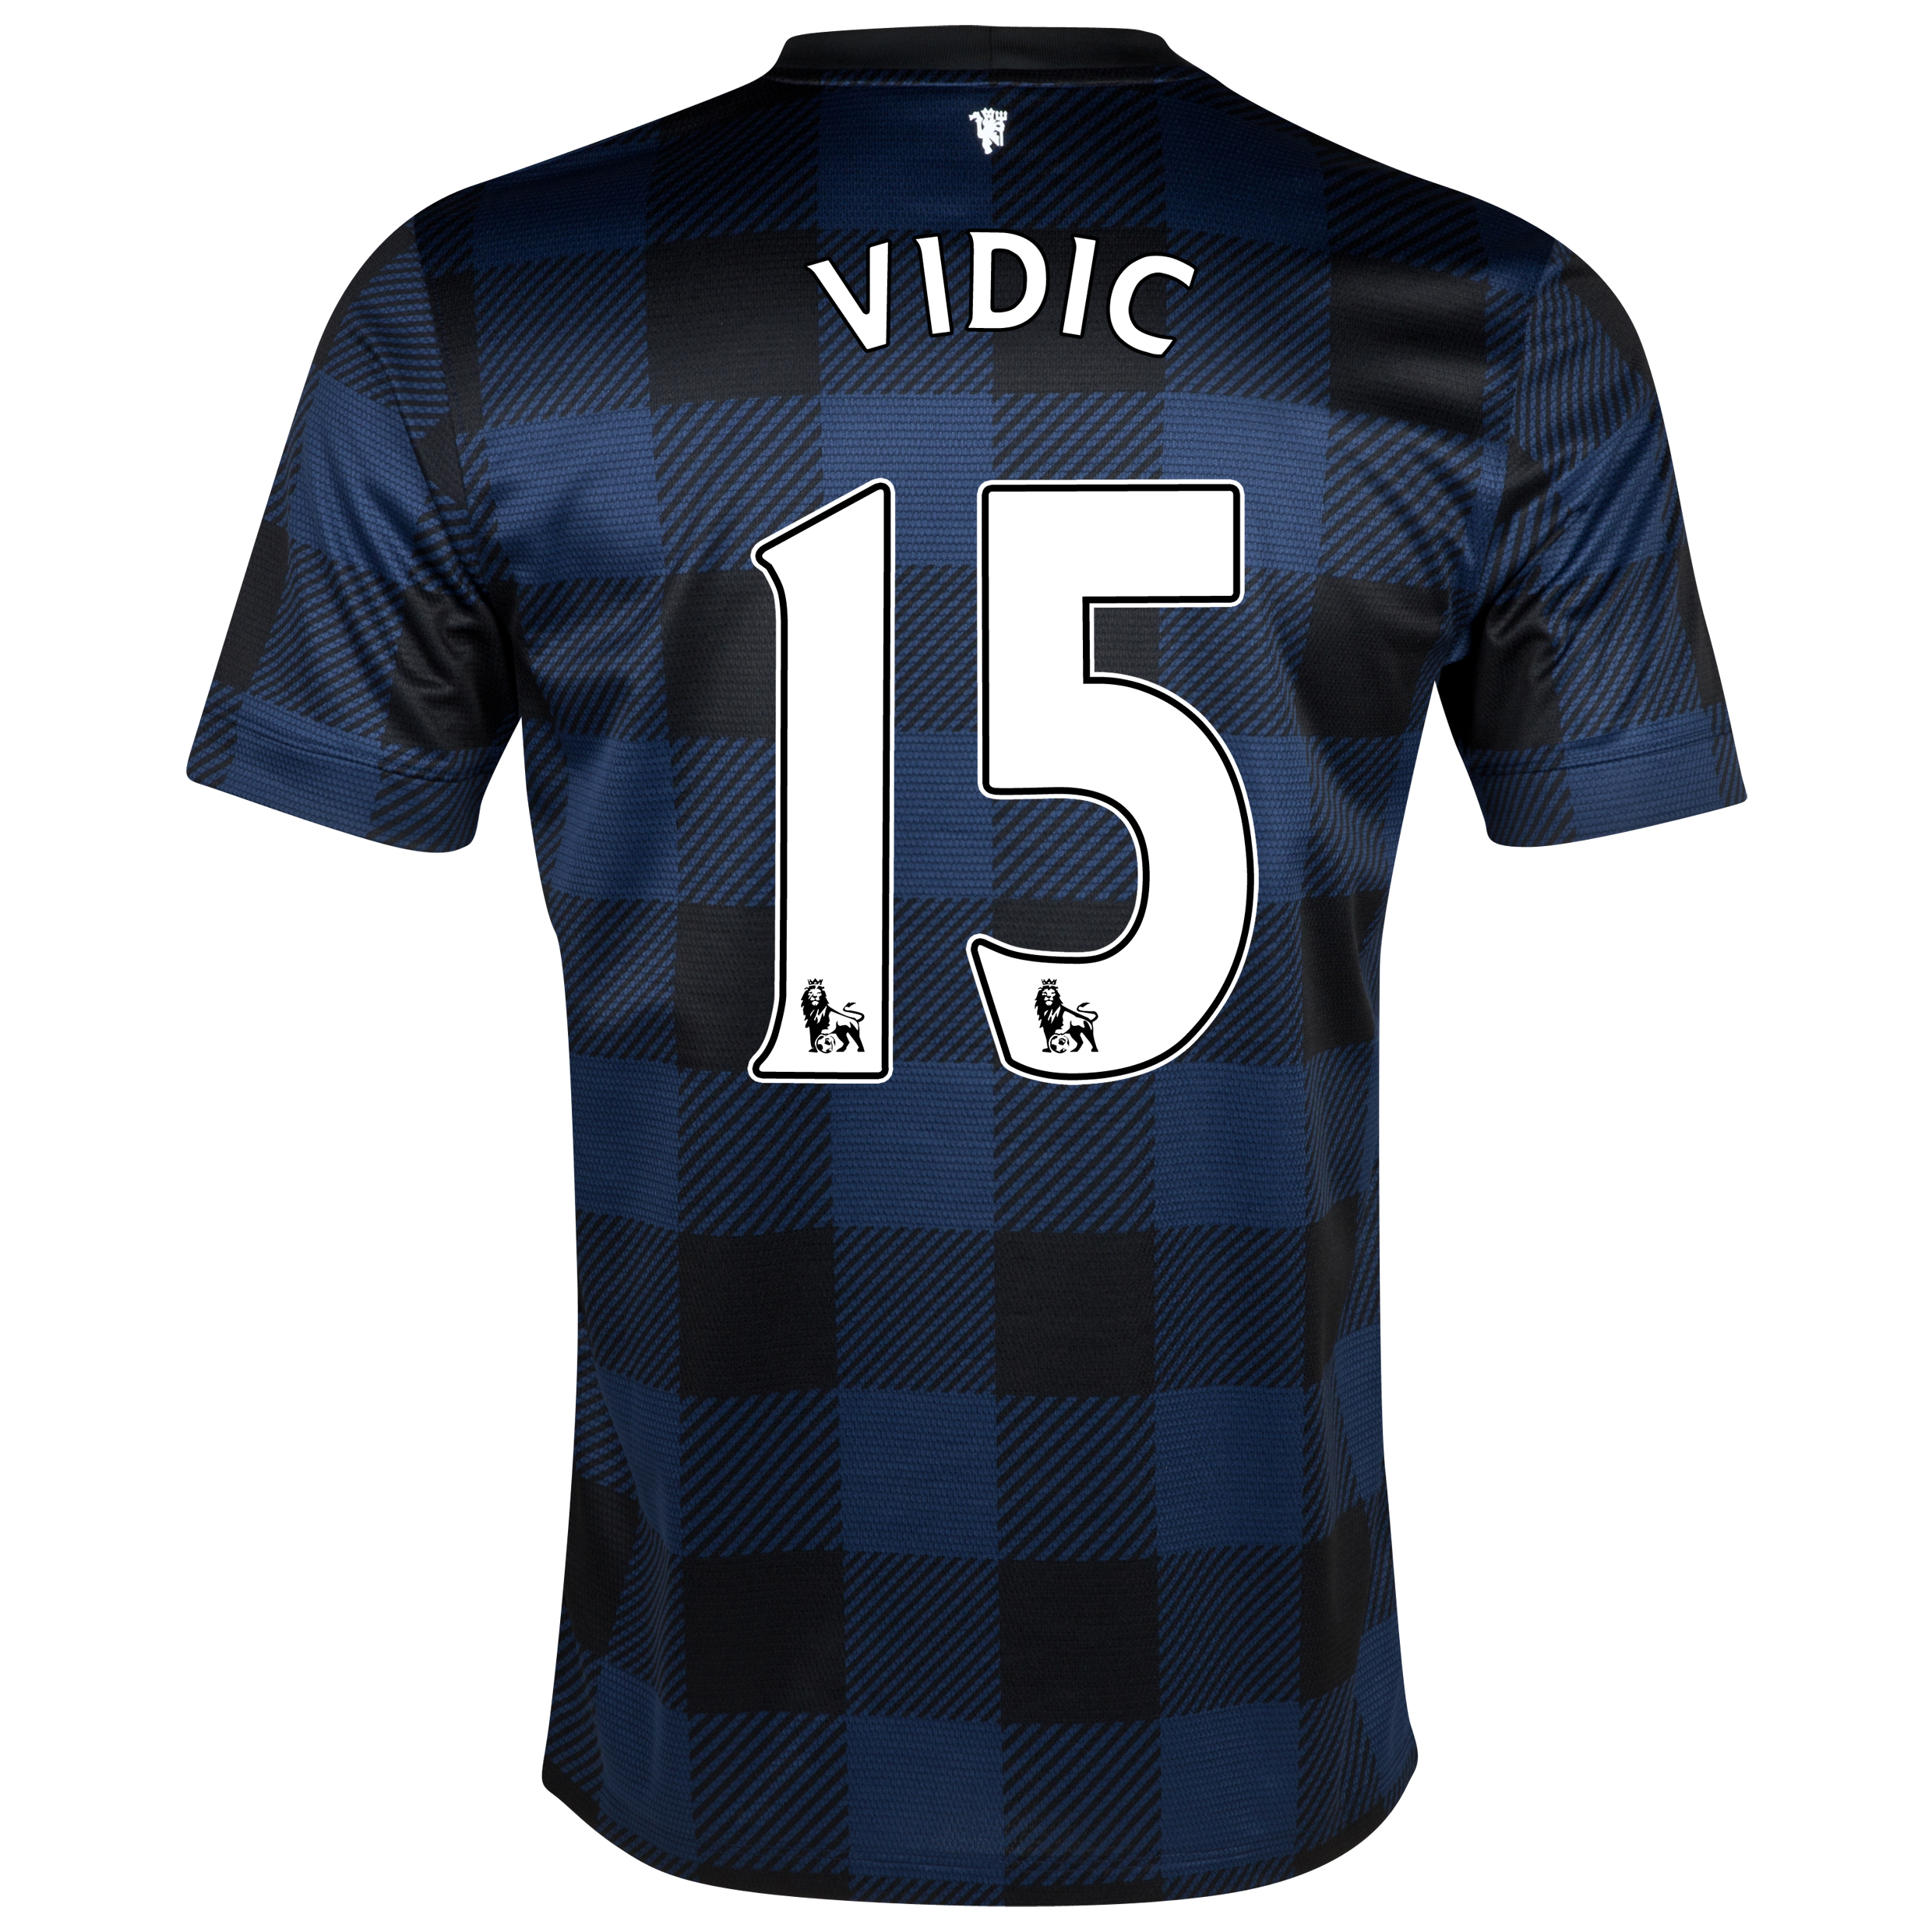 Manchester United Away Shirt 2013/14 with Vidic 15 printing